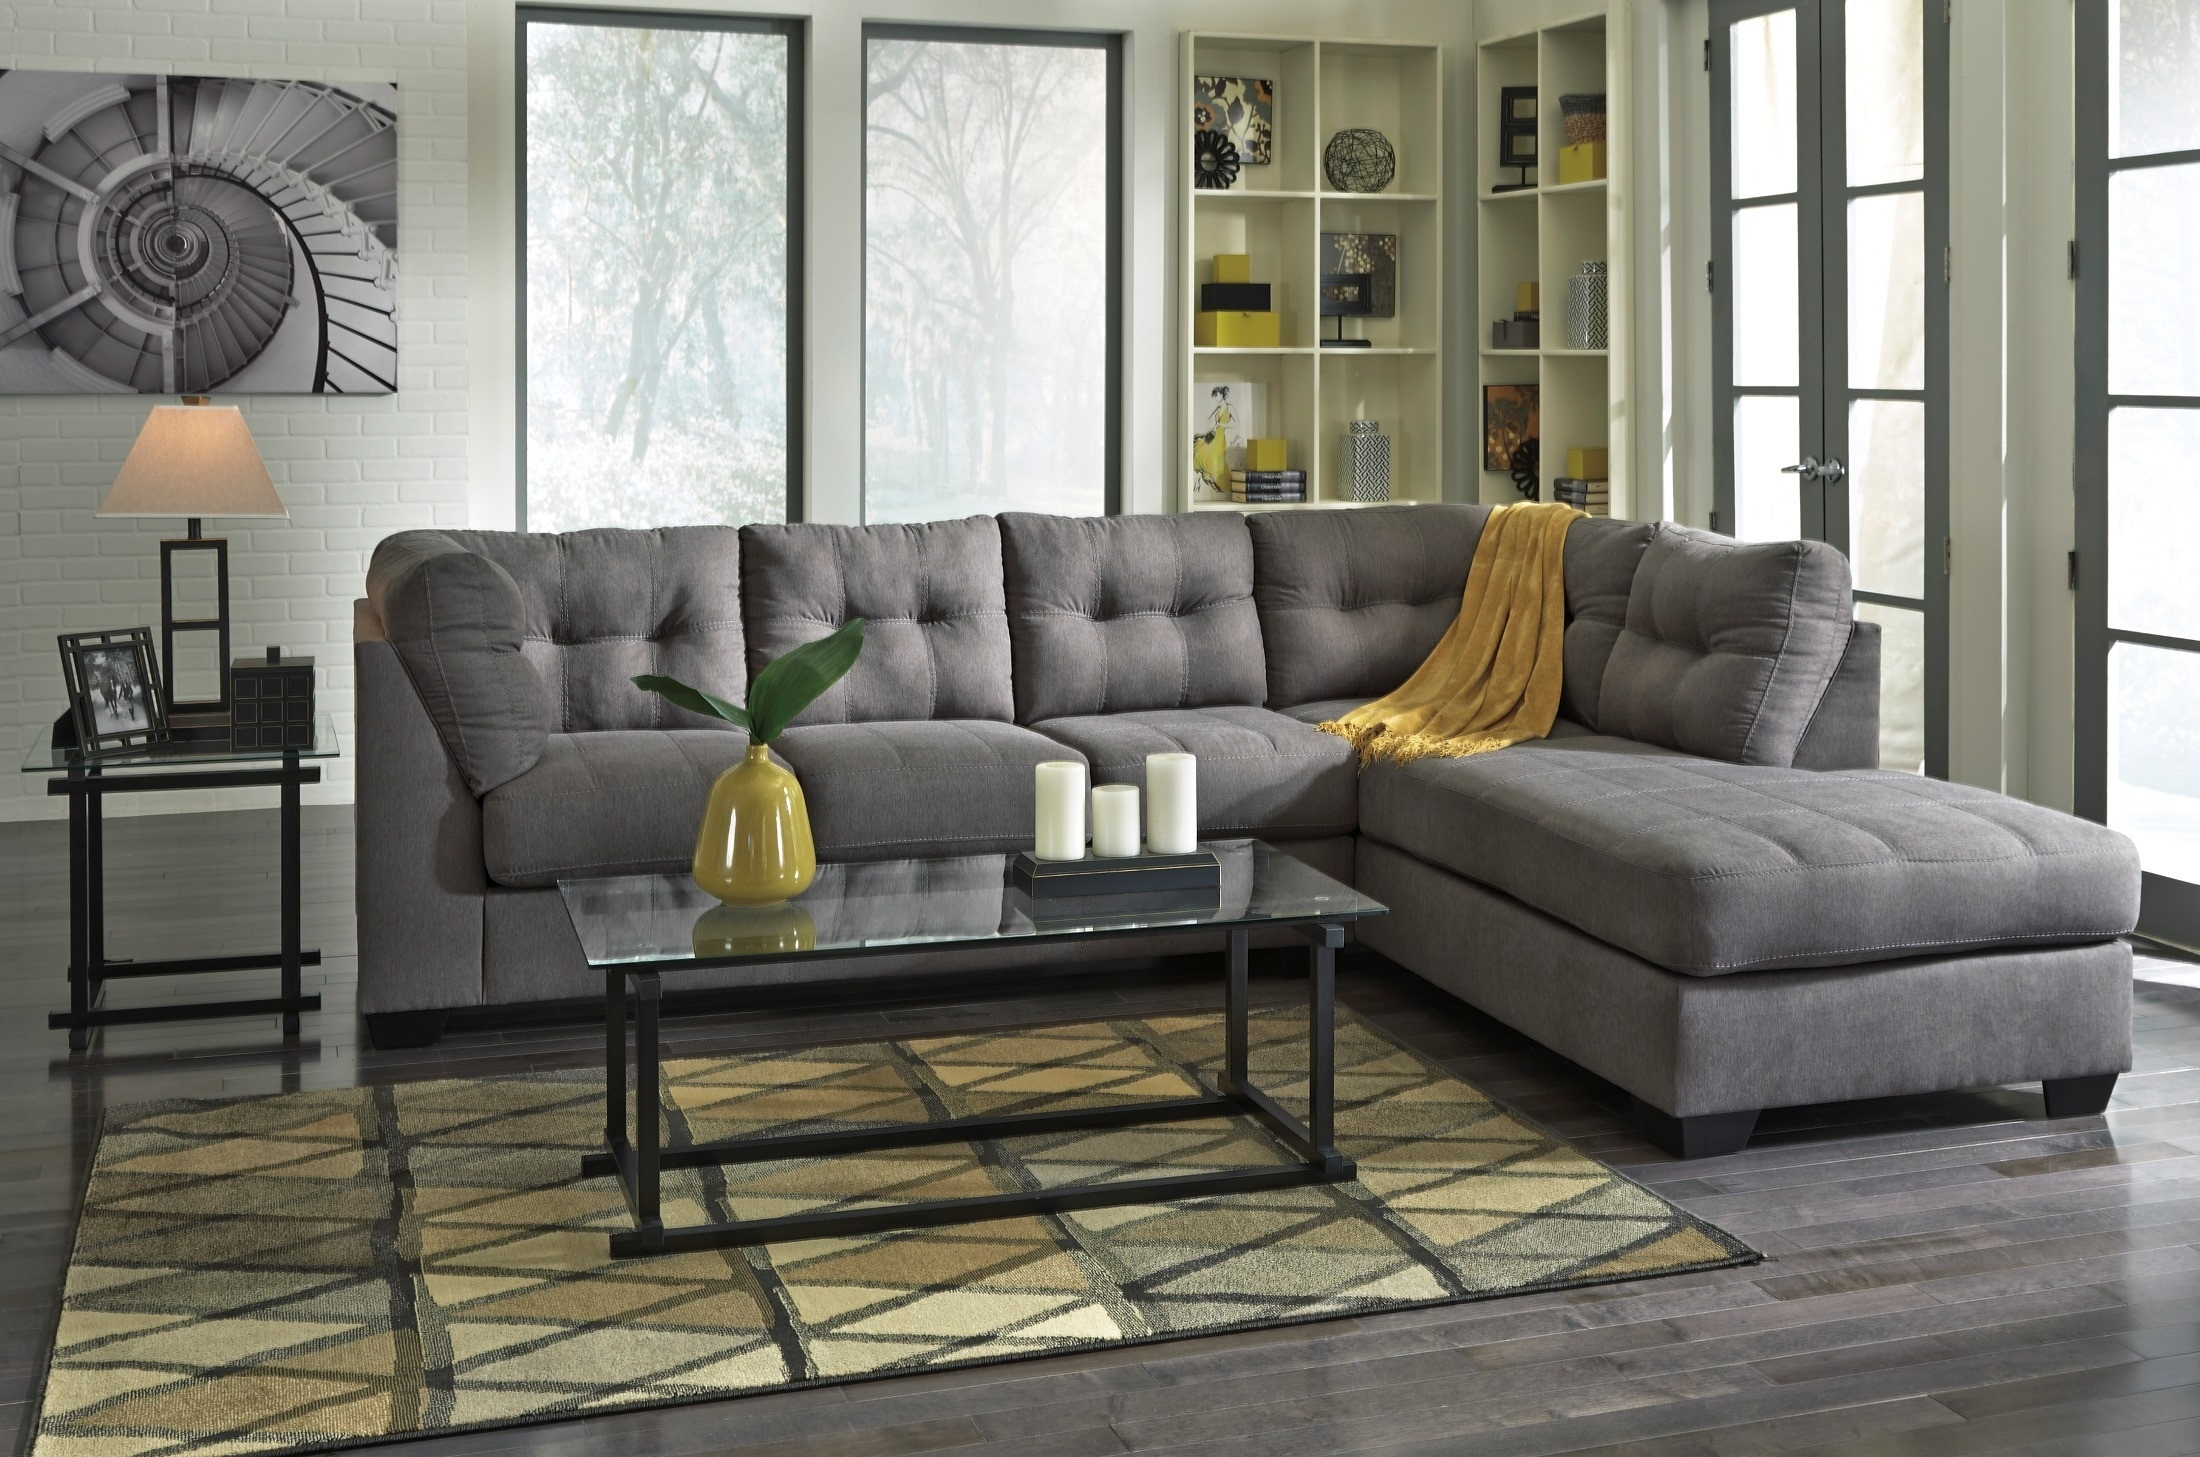 Maier Charcoal Raf Sectional From Ashley (45200 17 66) | Coleman With Meyer 3 Piece Sectionals With Laf Chaise (Image 15 of 25)